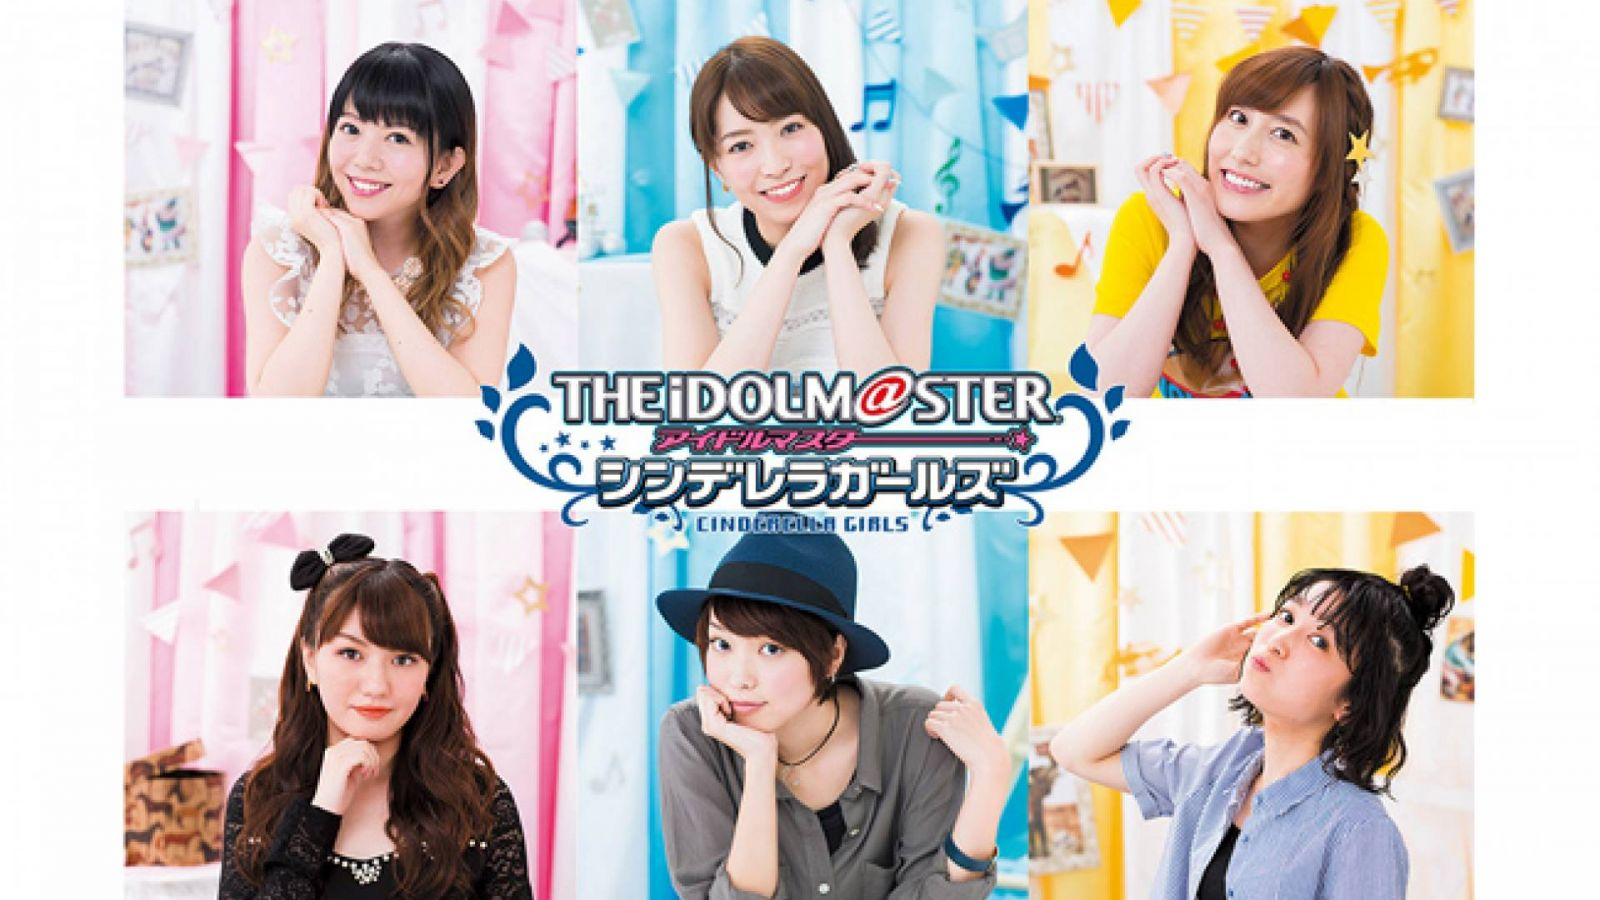 Entrevista con THE IDOLM@STER CINDERELLA GIRLS © BANDAI NAMCO Entertainment Inc.